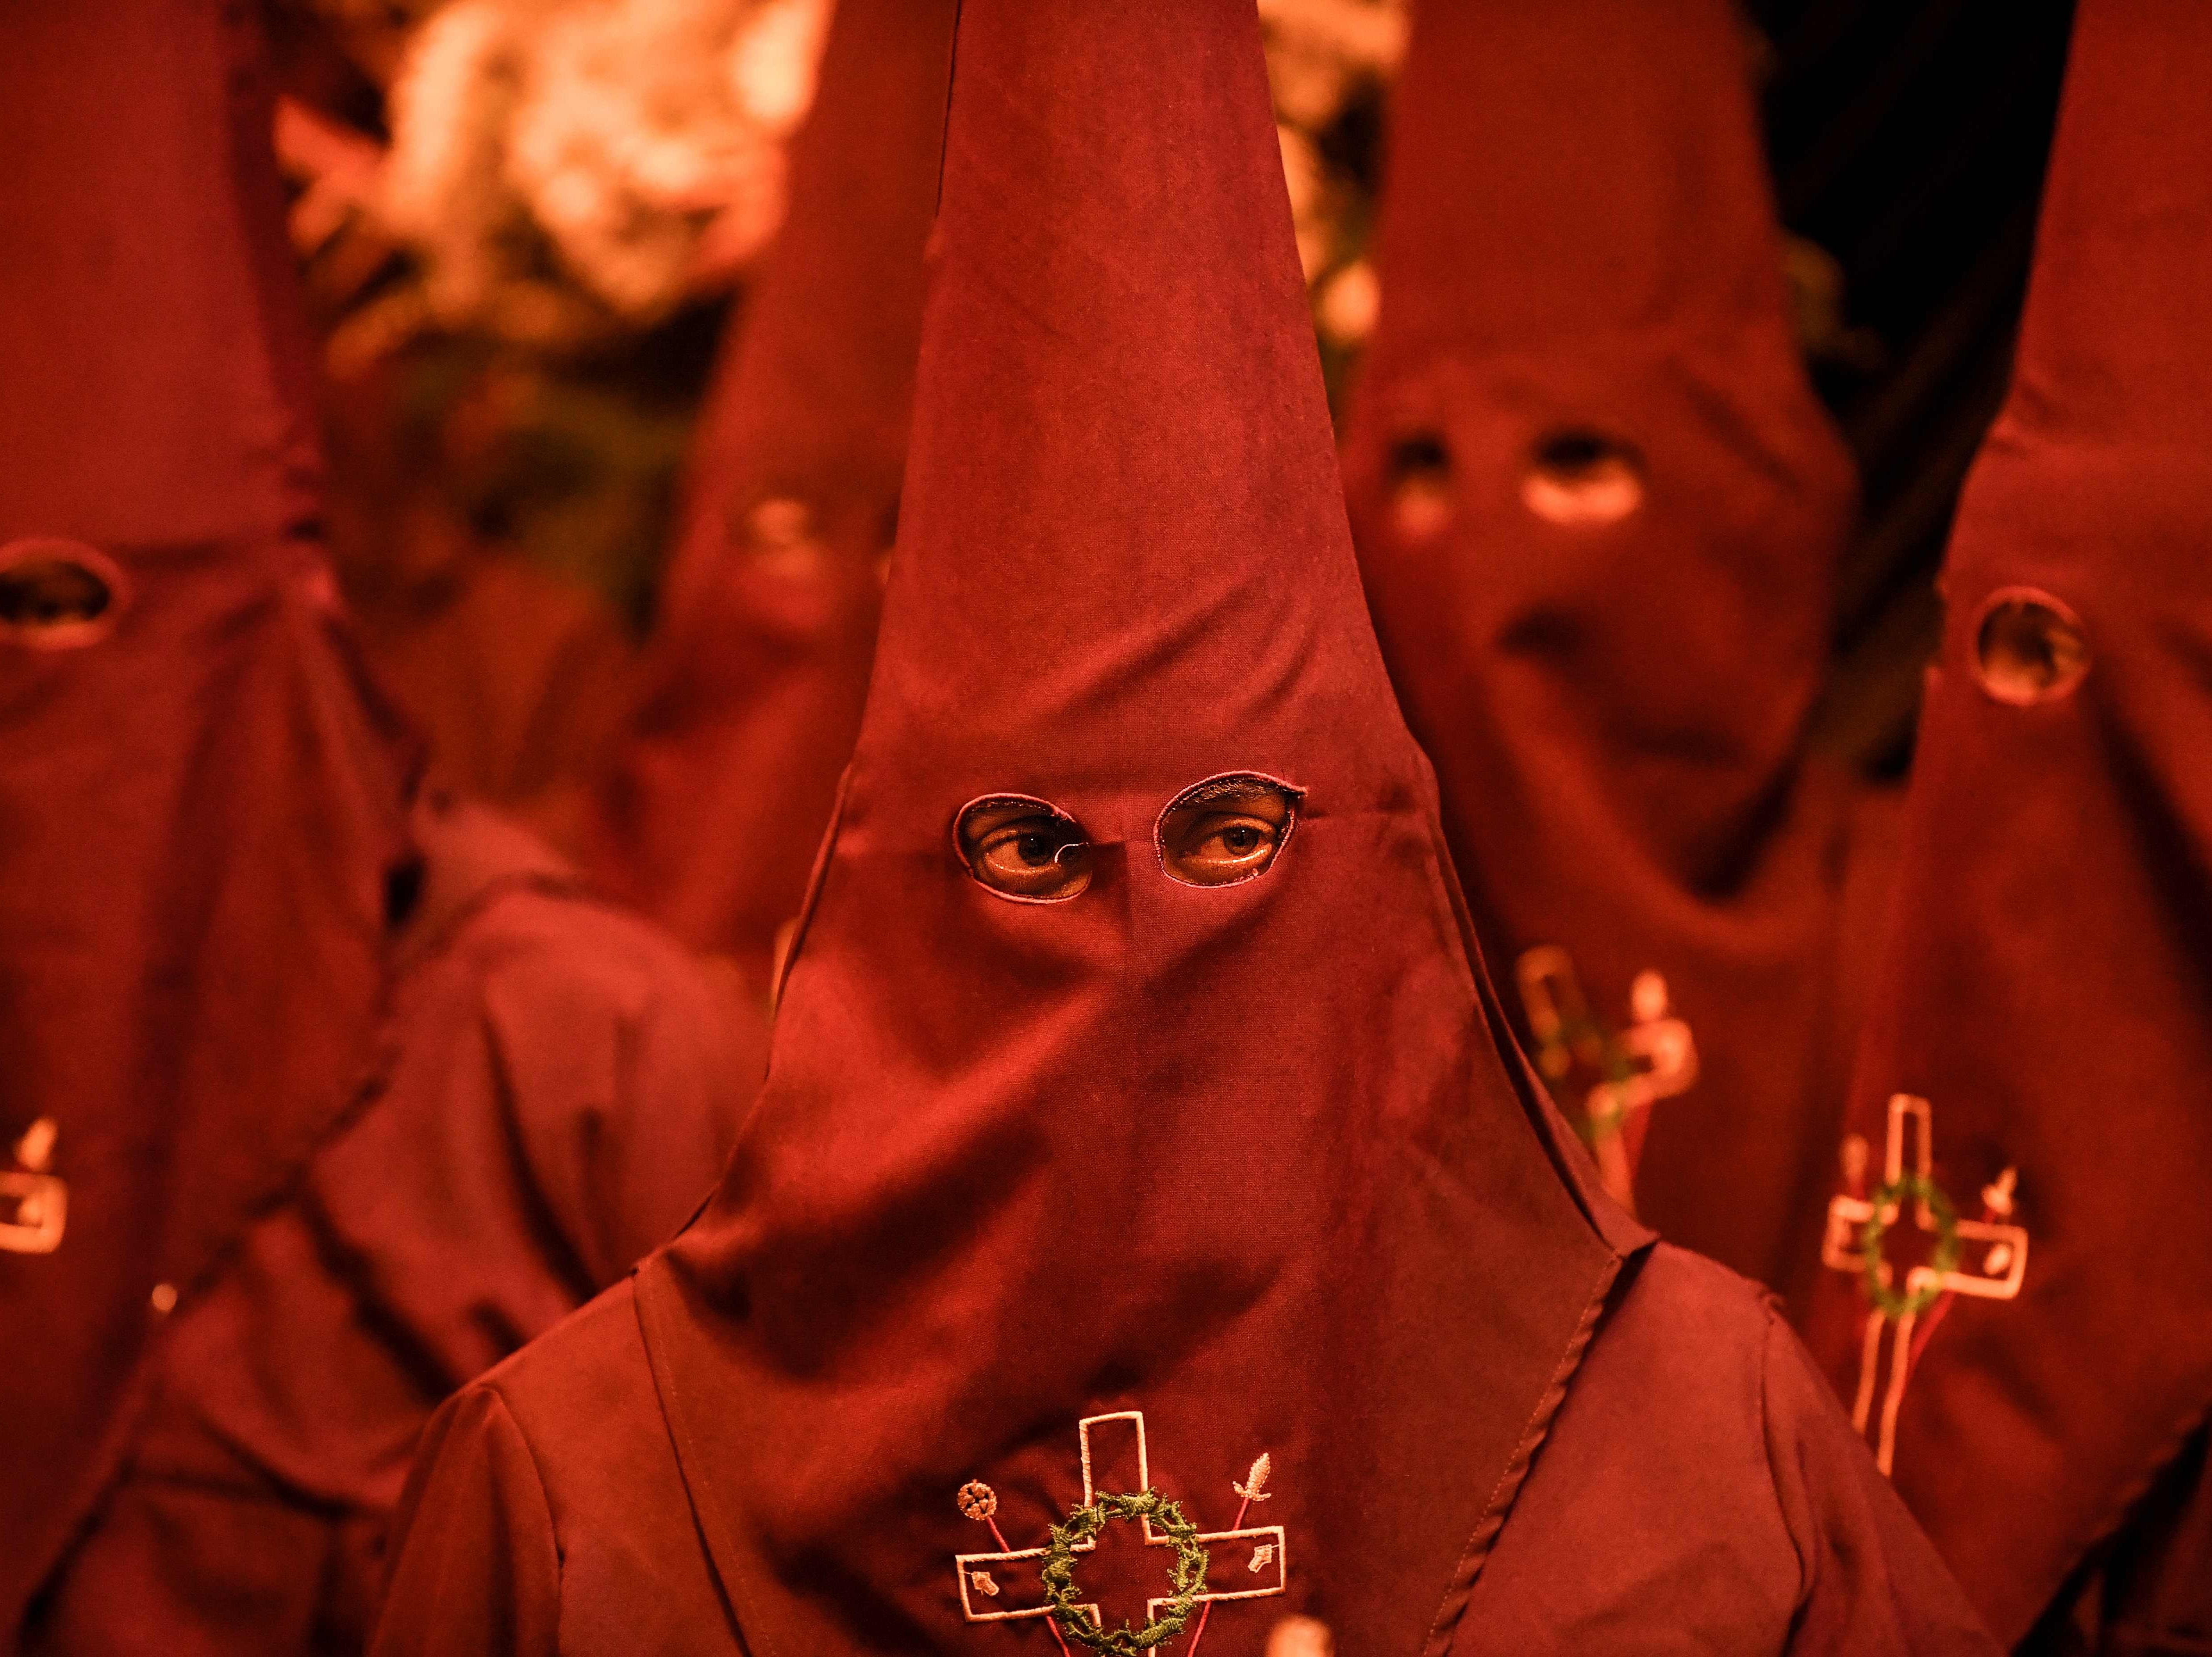 Members of the Nazarenos brotherhood take part of a Goof Friday procession during Holy Week celebrations in Zipaquira, Colombia, on April 19, 2019.